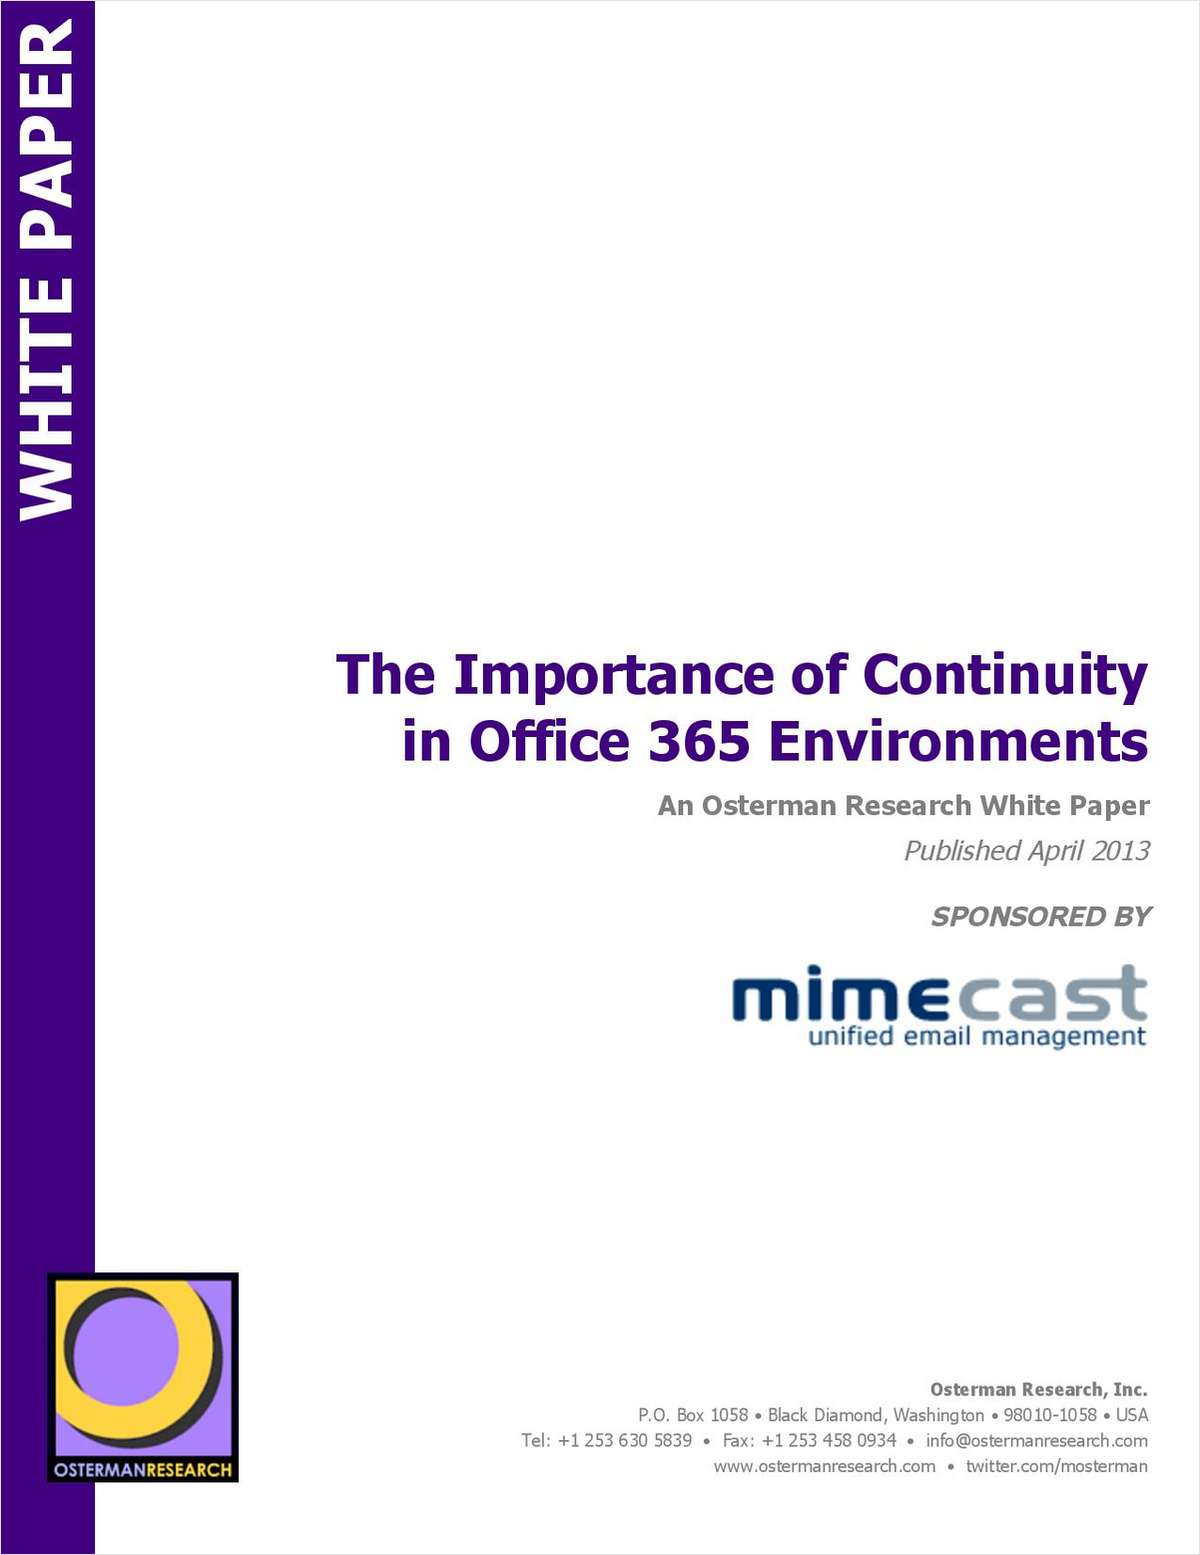 The Importance of Continuity in Office 365 Environments